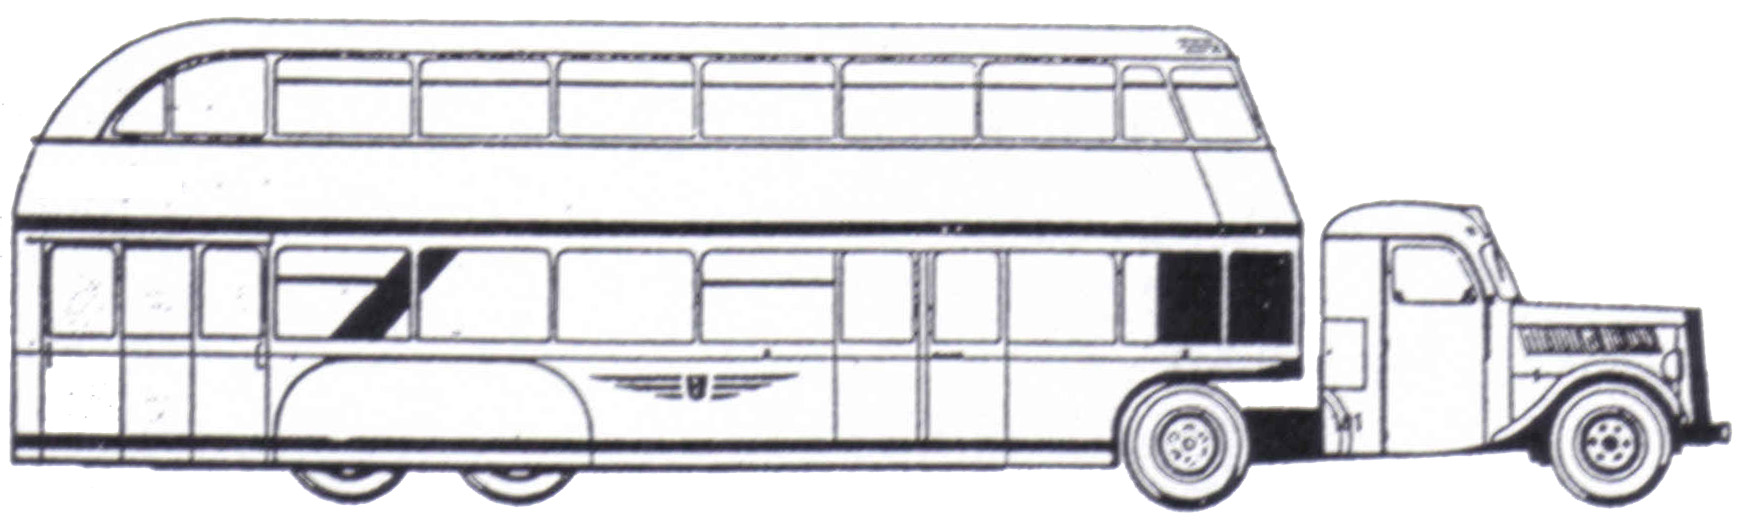 Drawn bus line drawing #2